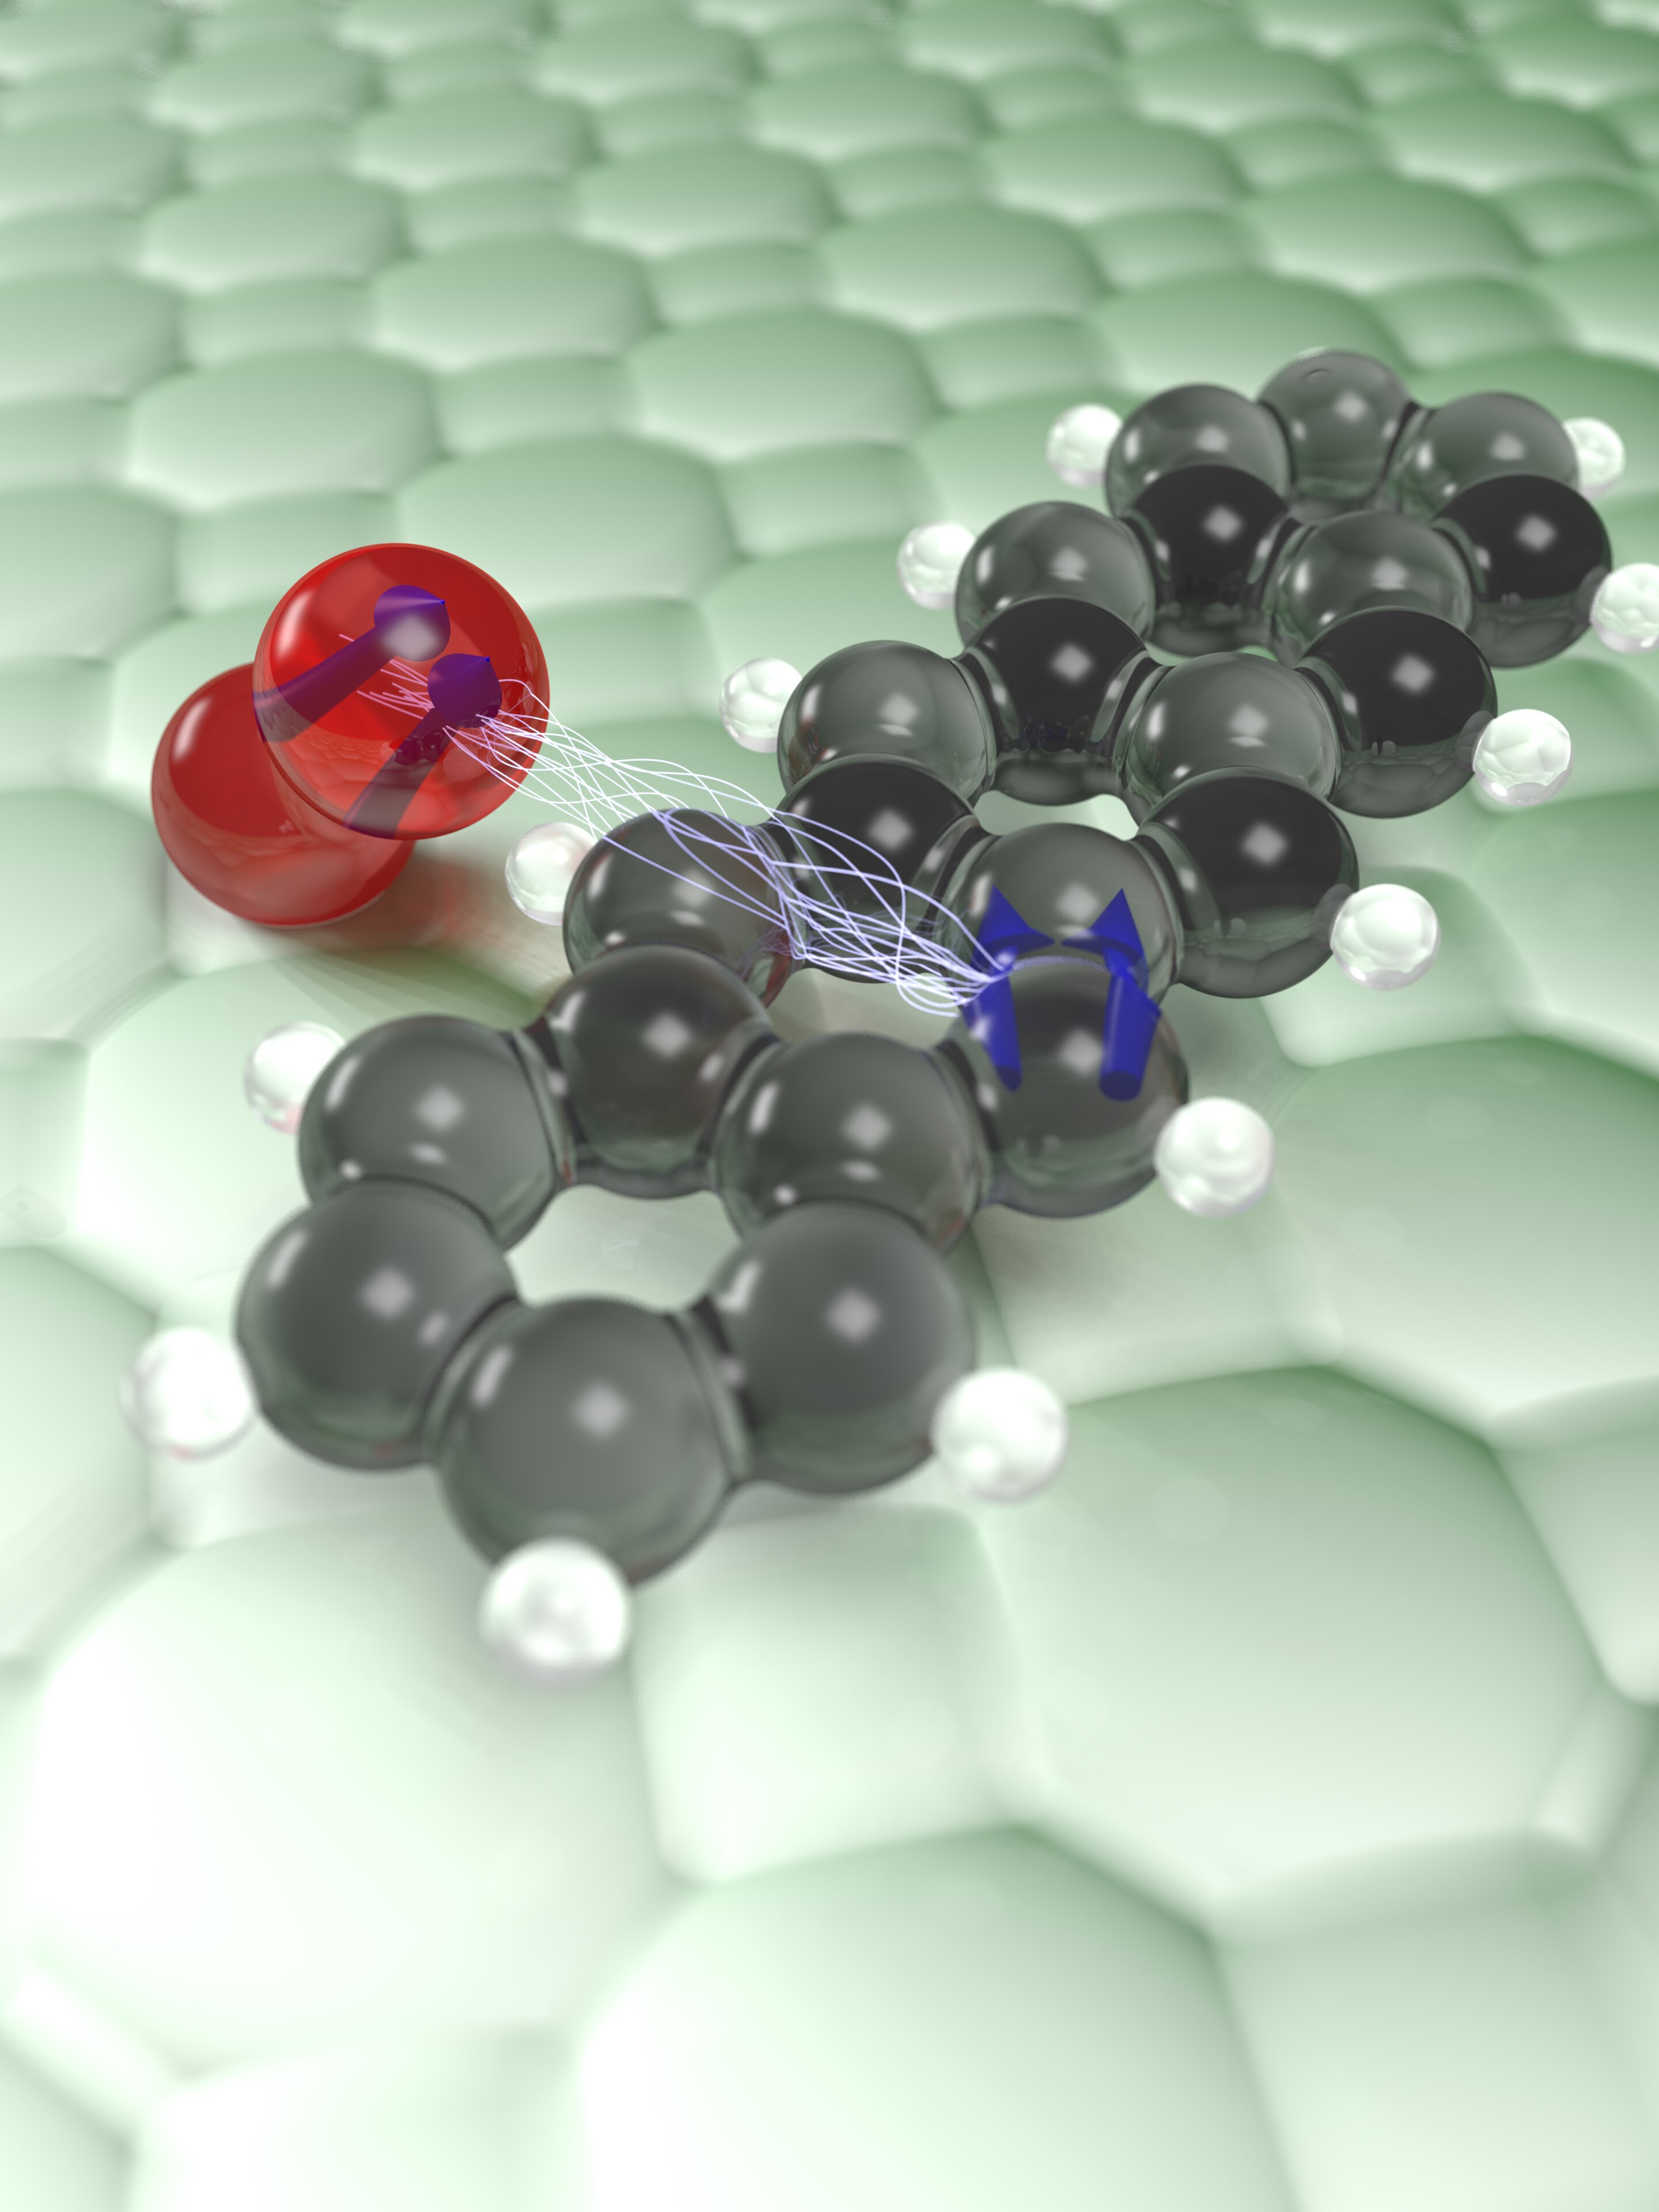 A novel microscope reveals the miracle of molecular oxygen-